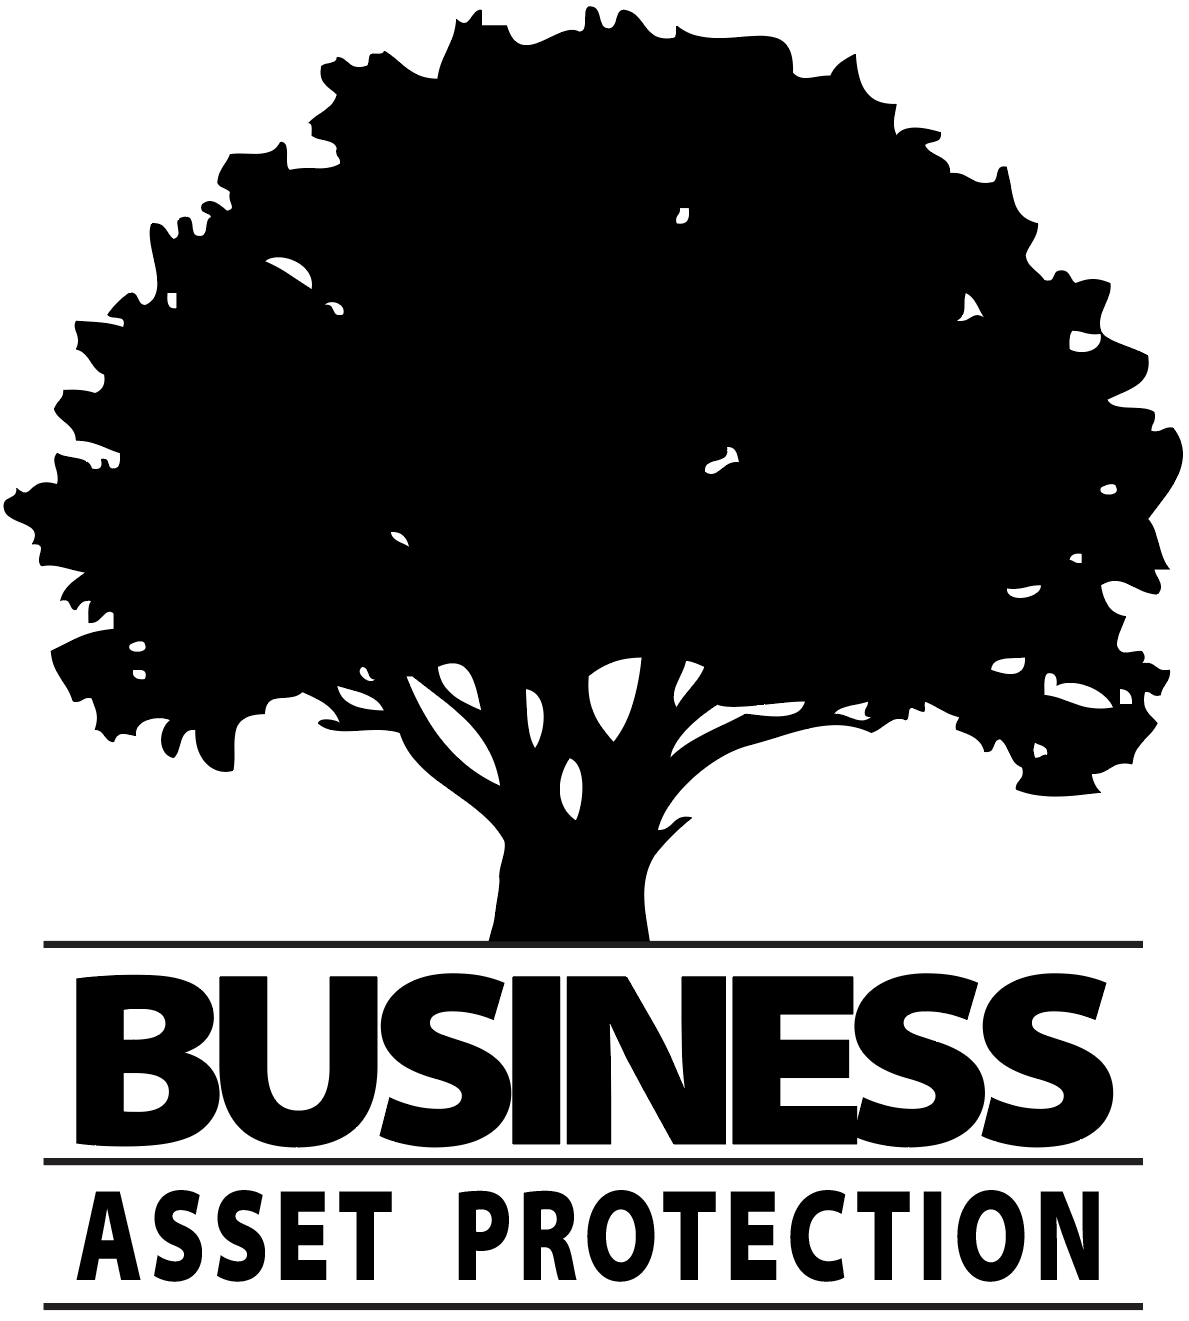 Business Asset Protection